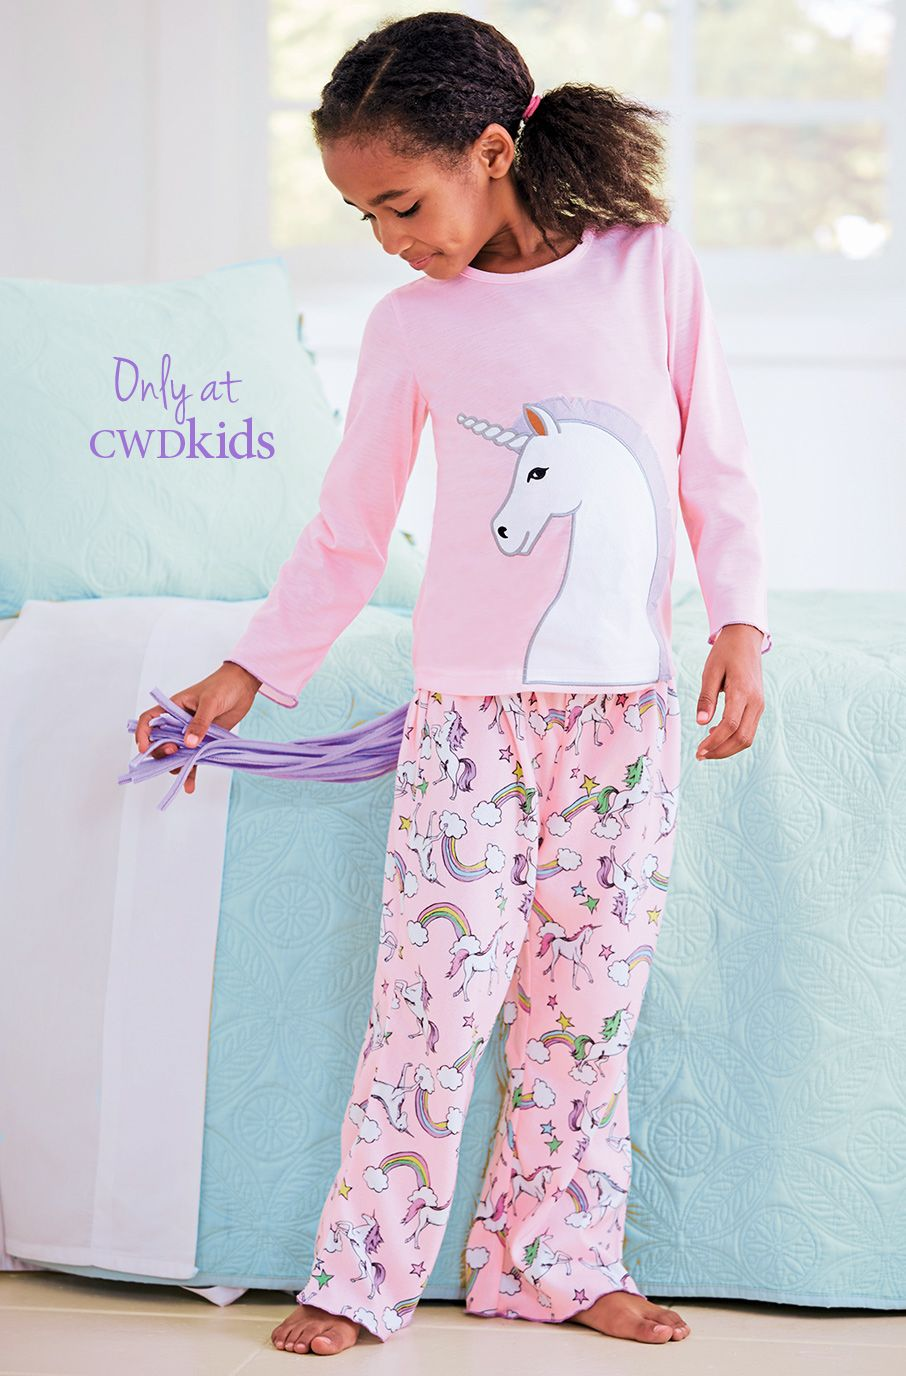 ed1b6a2742 From CWDkids  Unicorn Print Gown   Tail Pajamas. Find this Pin and more on  Kids- clothes ...